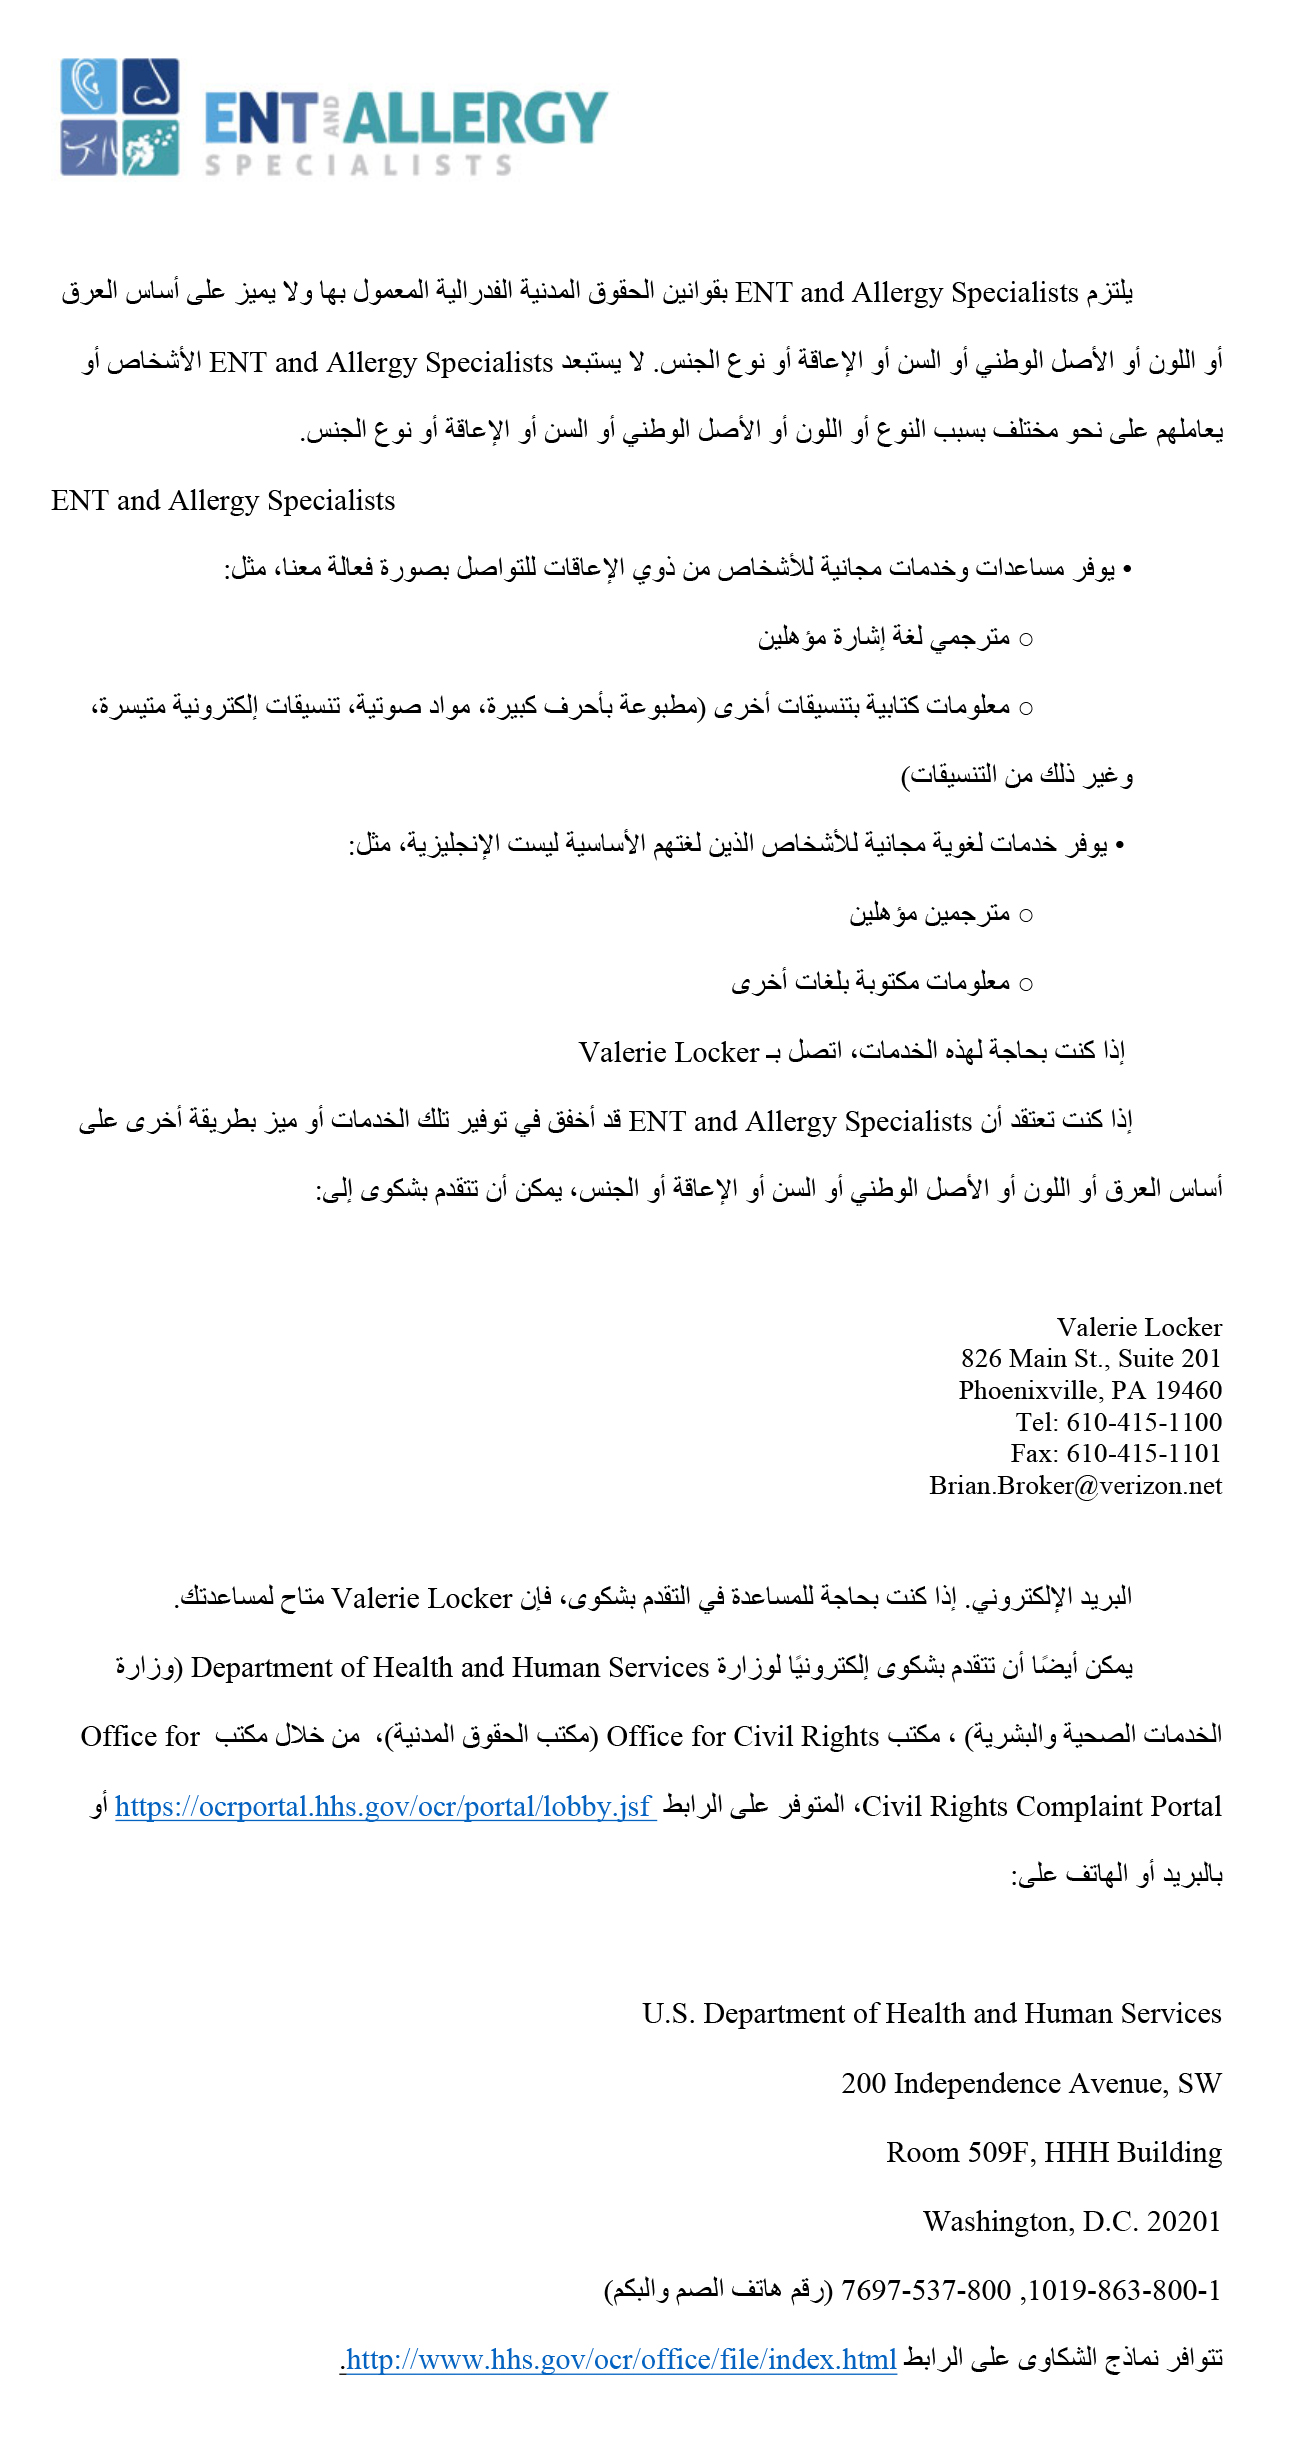 Microsoft Word - ENT Non-discrimination Arabic.docx